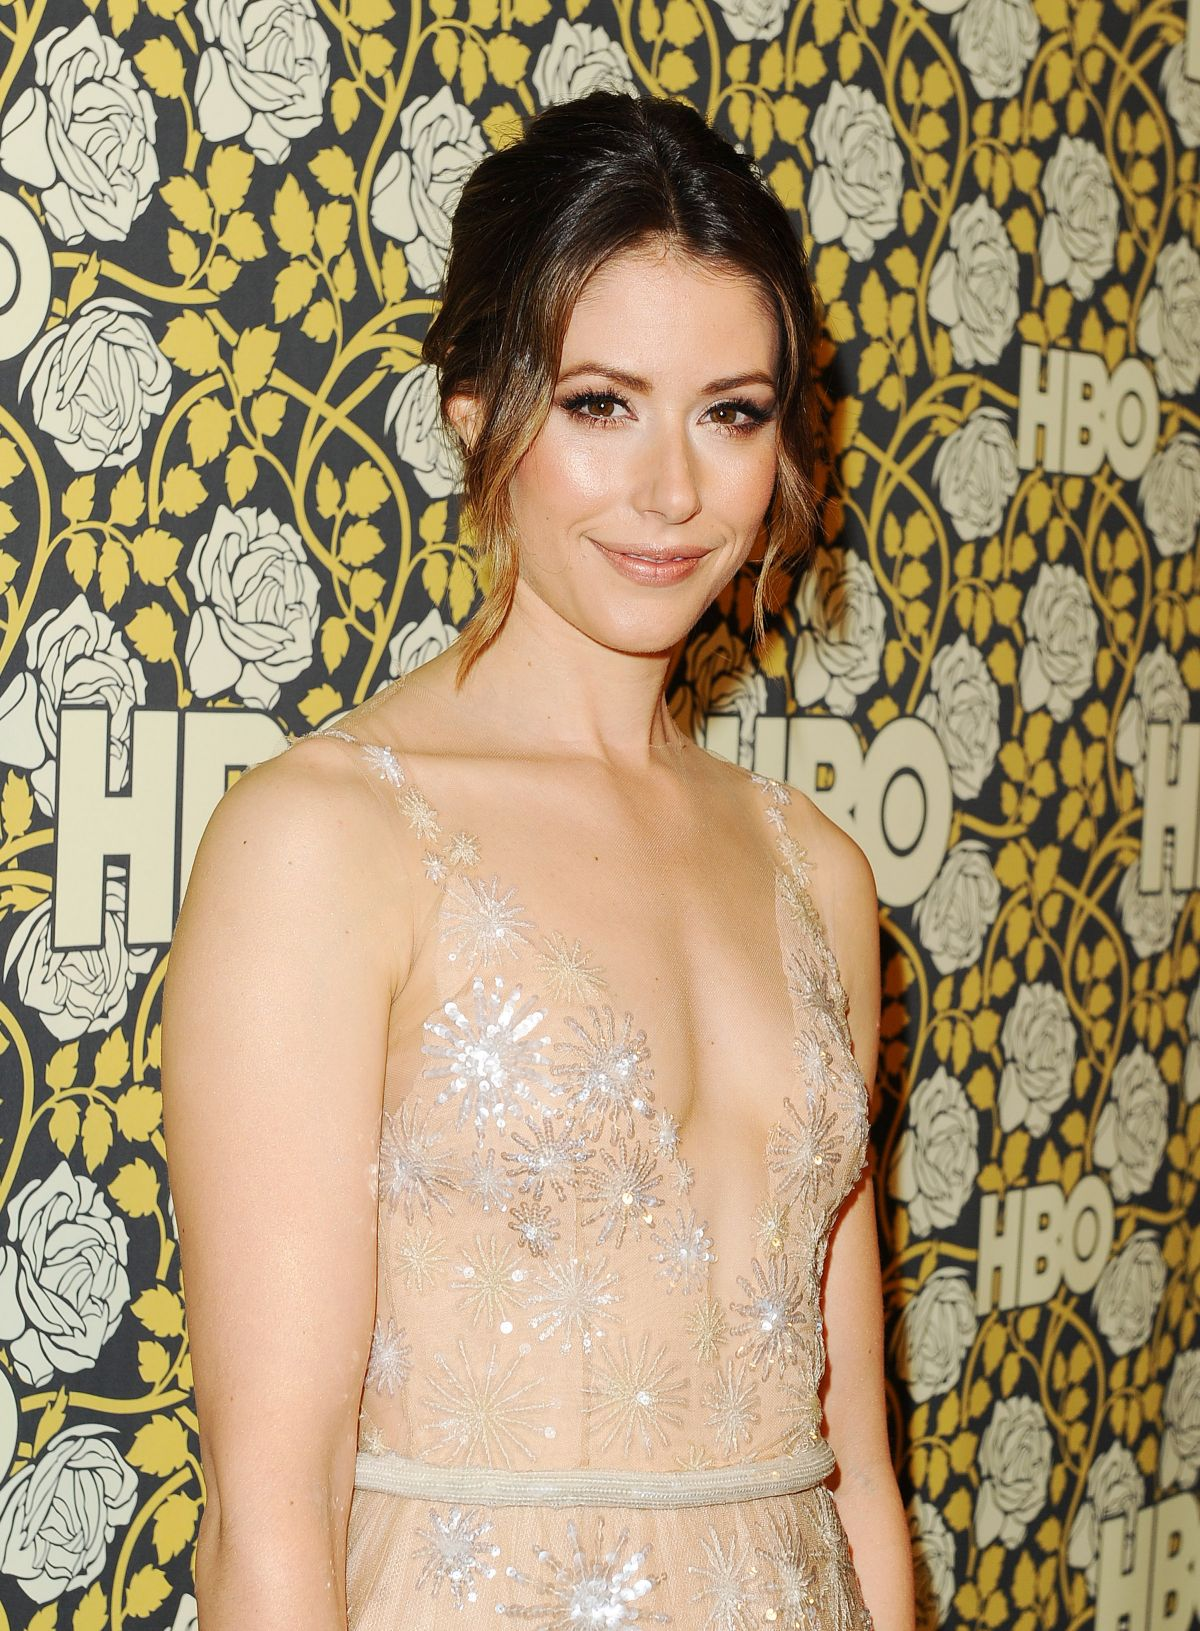 AMANDA CREW at HBO Golden Globe 2016 Afterparty in Beverly Hills 01/10/2016